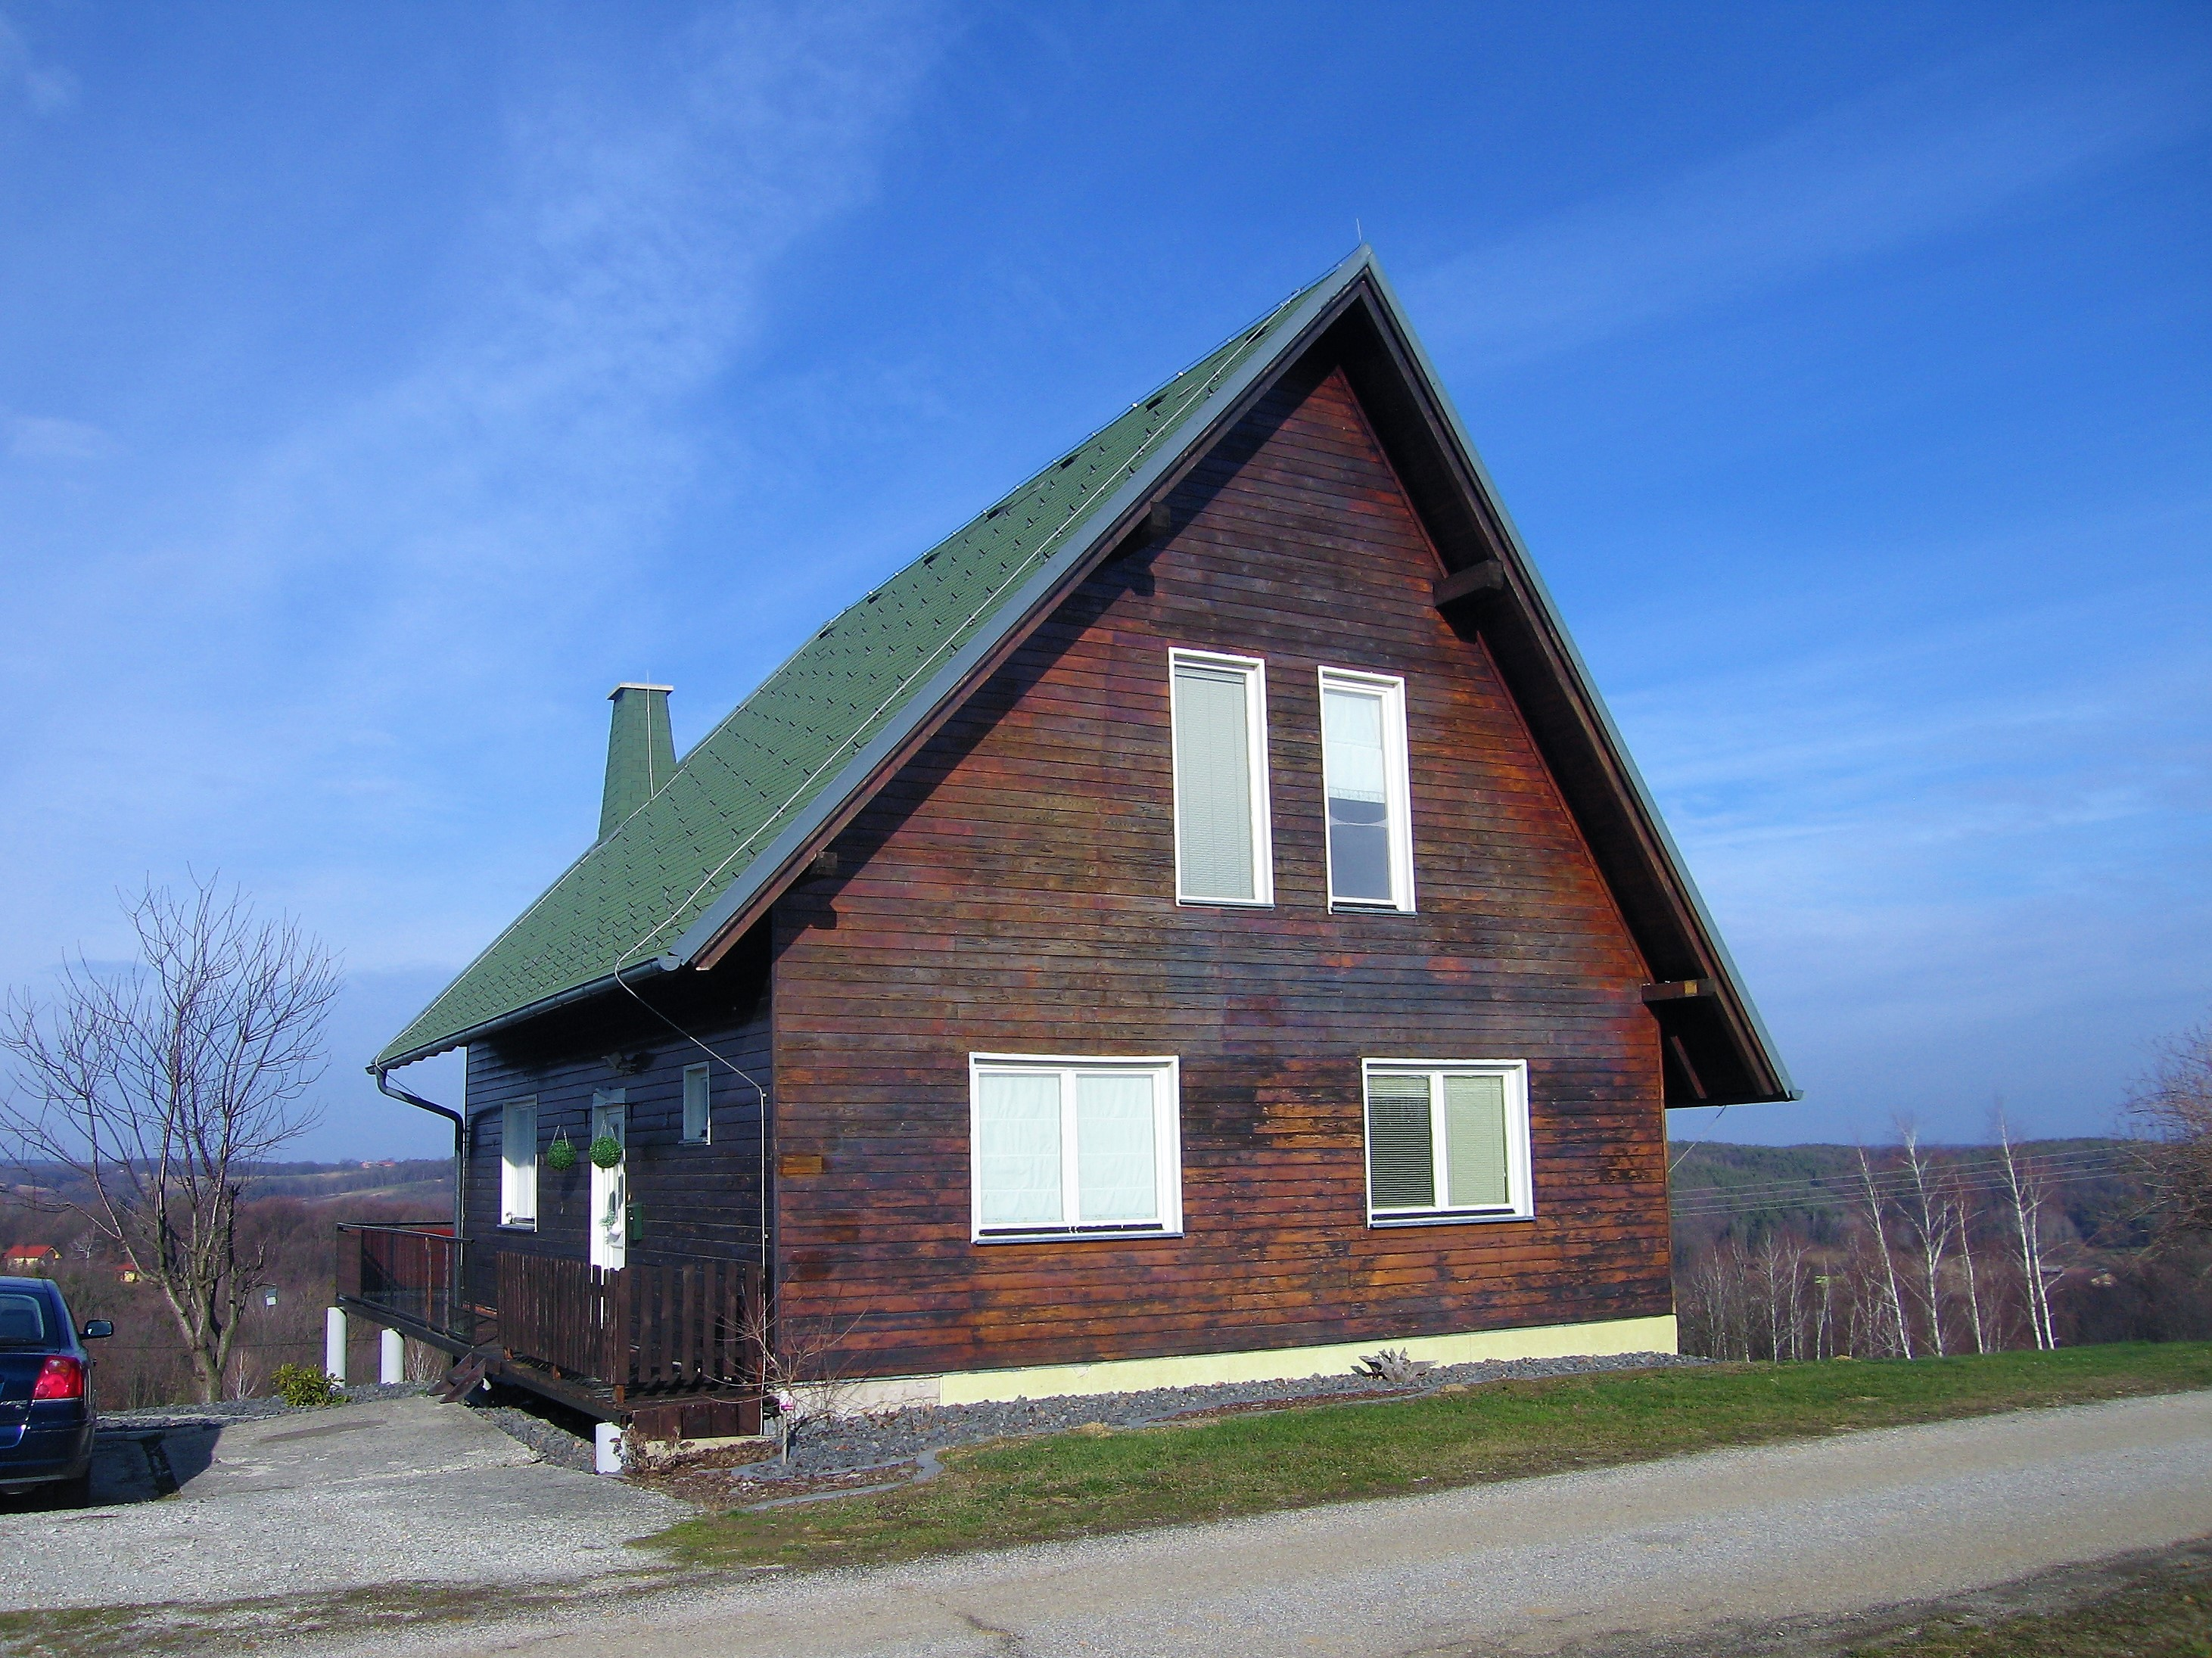 Lovely holiday house for sale in Prekmurje